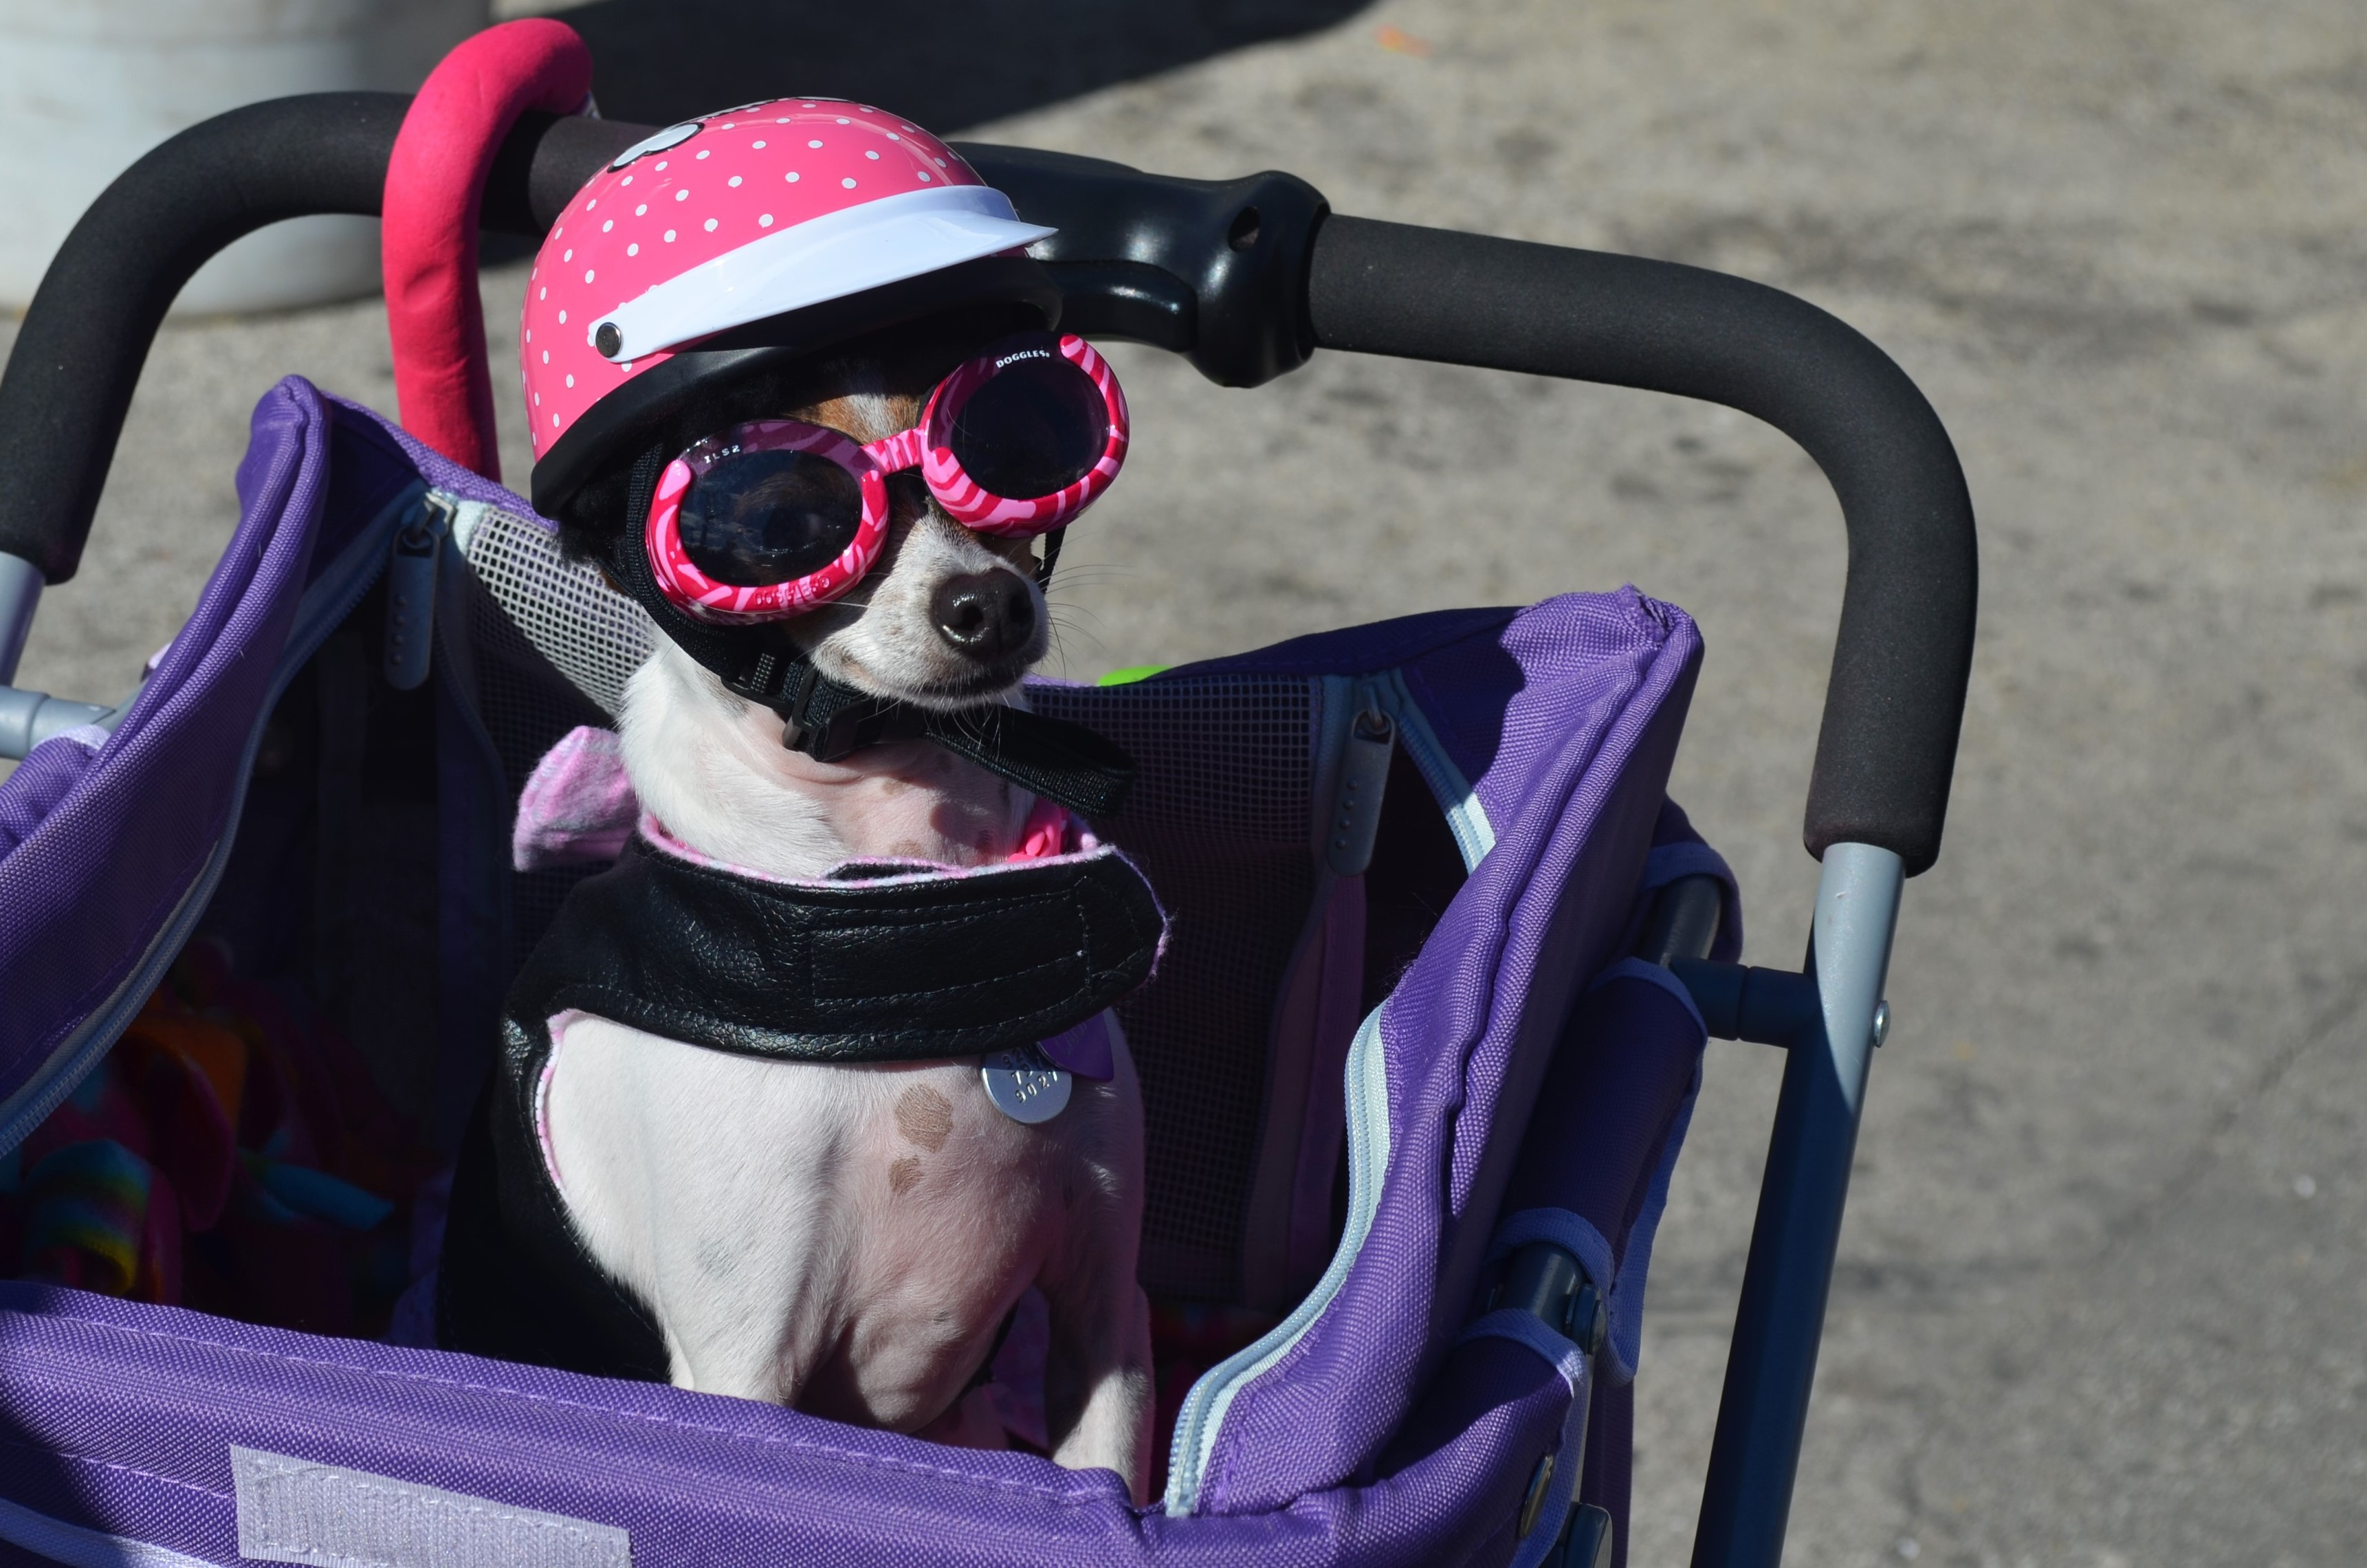 Motorcycle-riding chihuahua at Pet Fest 2018. Photo by Jack Fennimore.